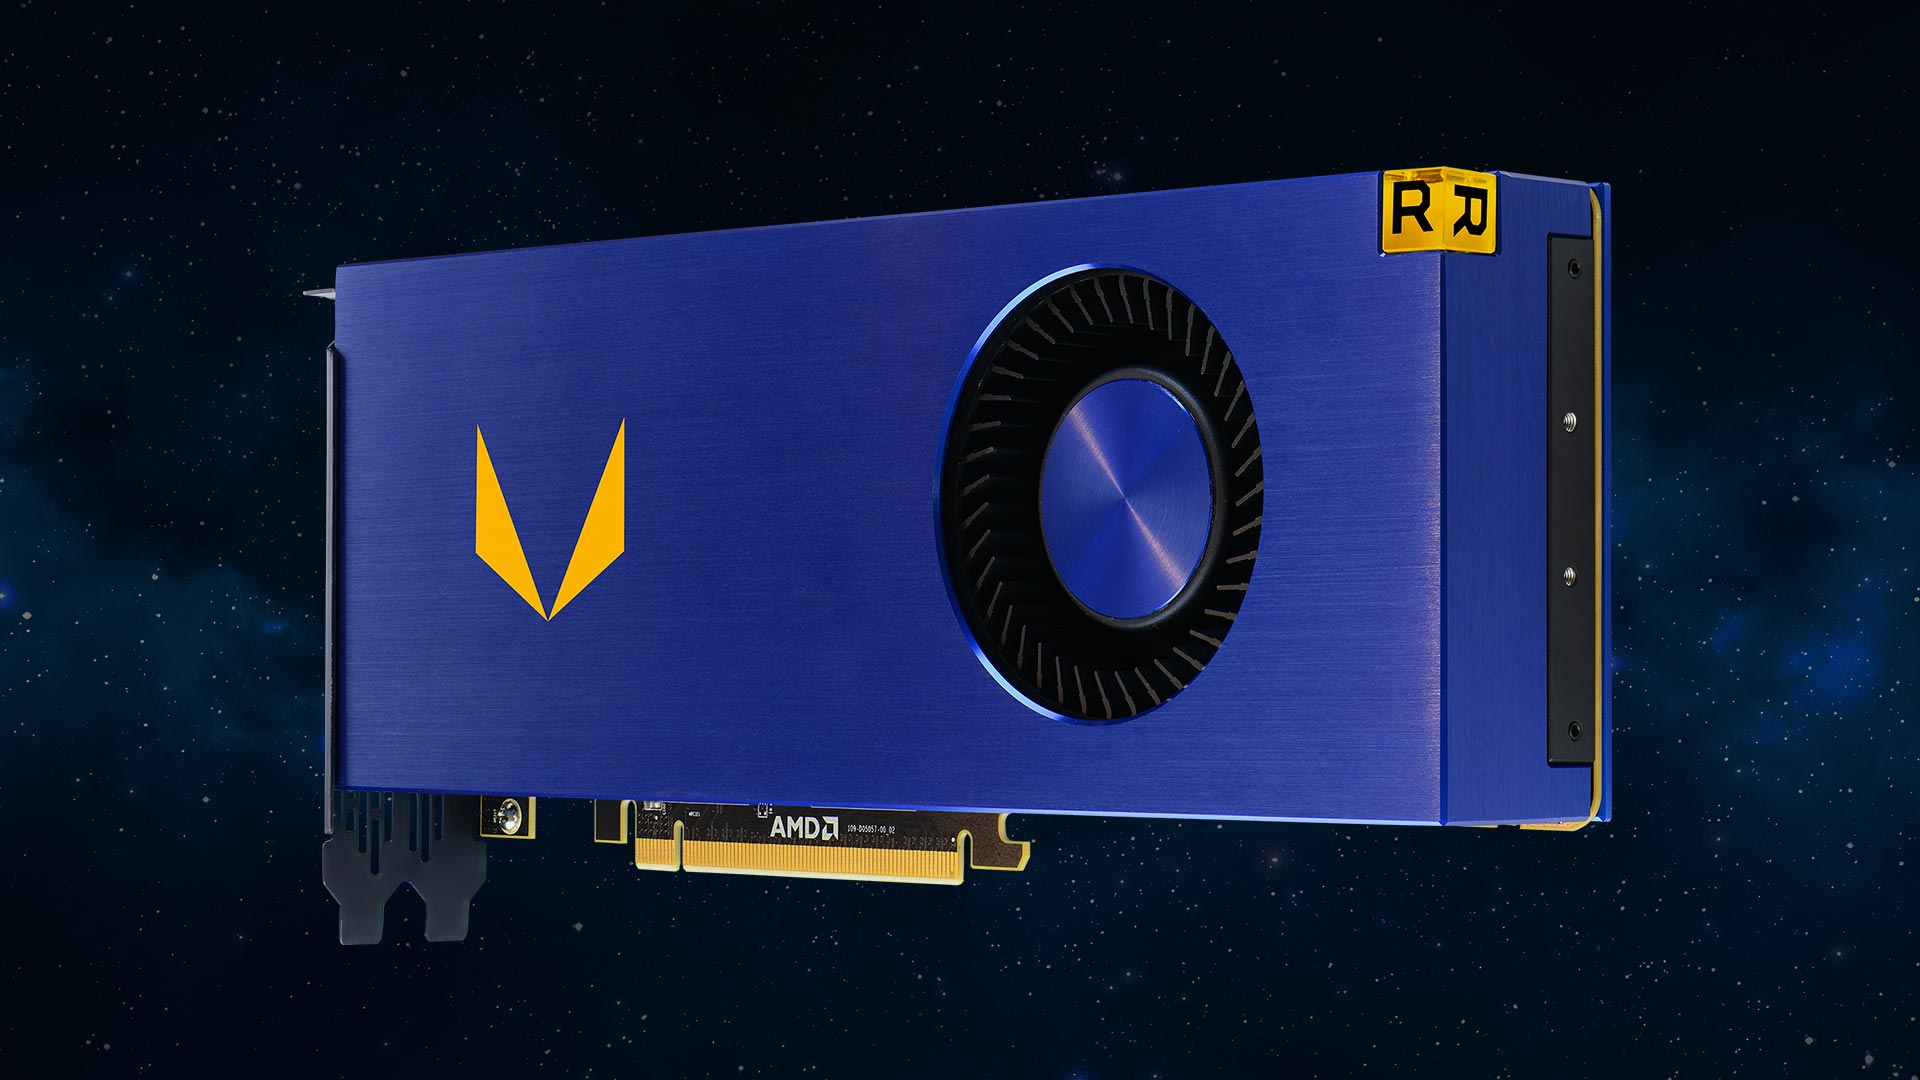 Amd Radeon Vega Frontier Edition Live Benchmarking By Pcperspective